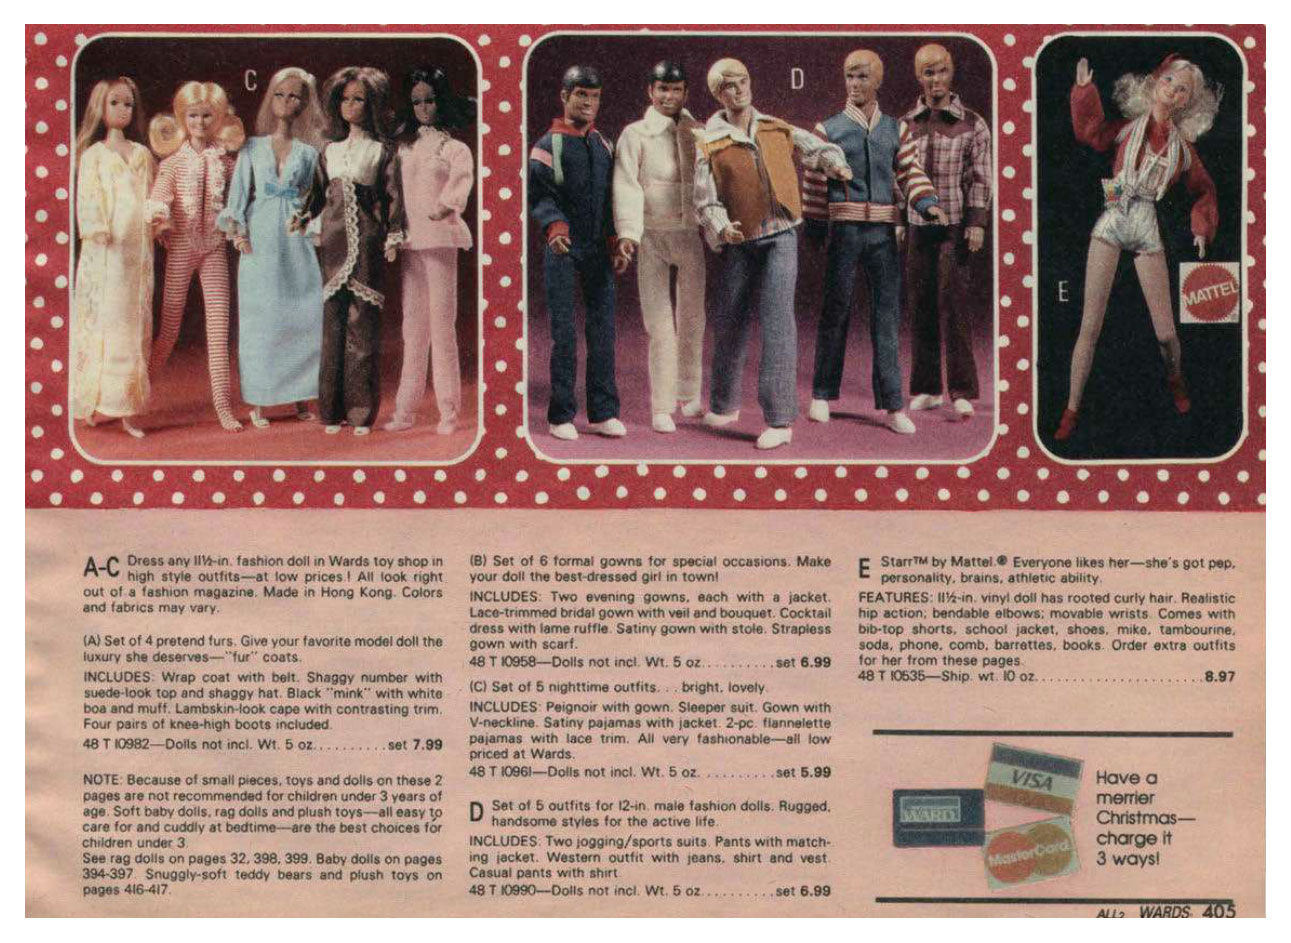 From 1981 Montgomery Ward Christmas catalogue